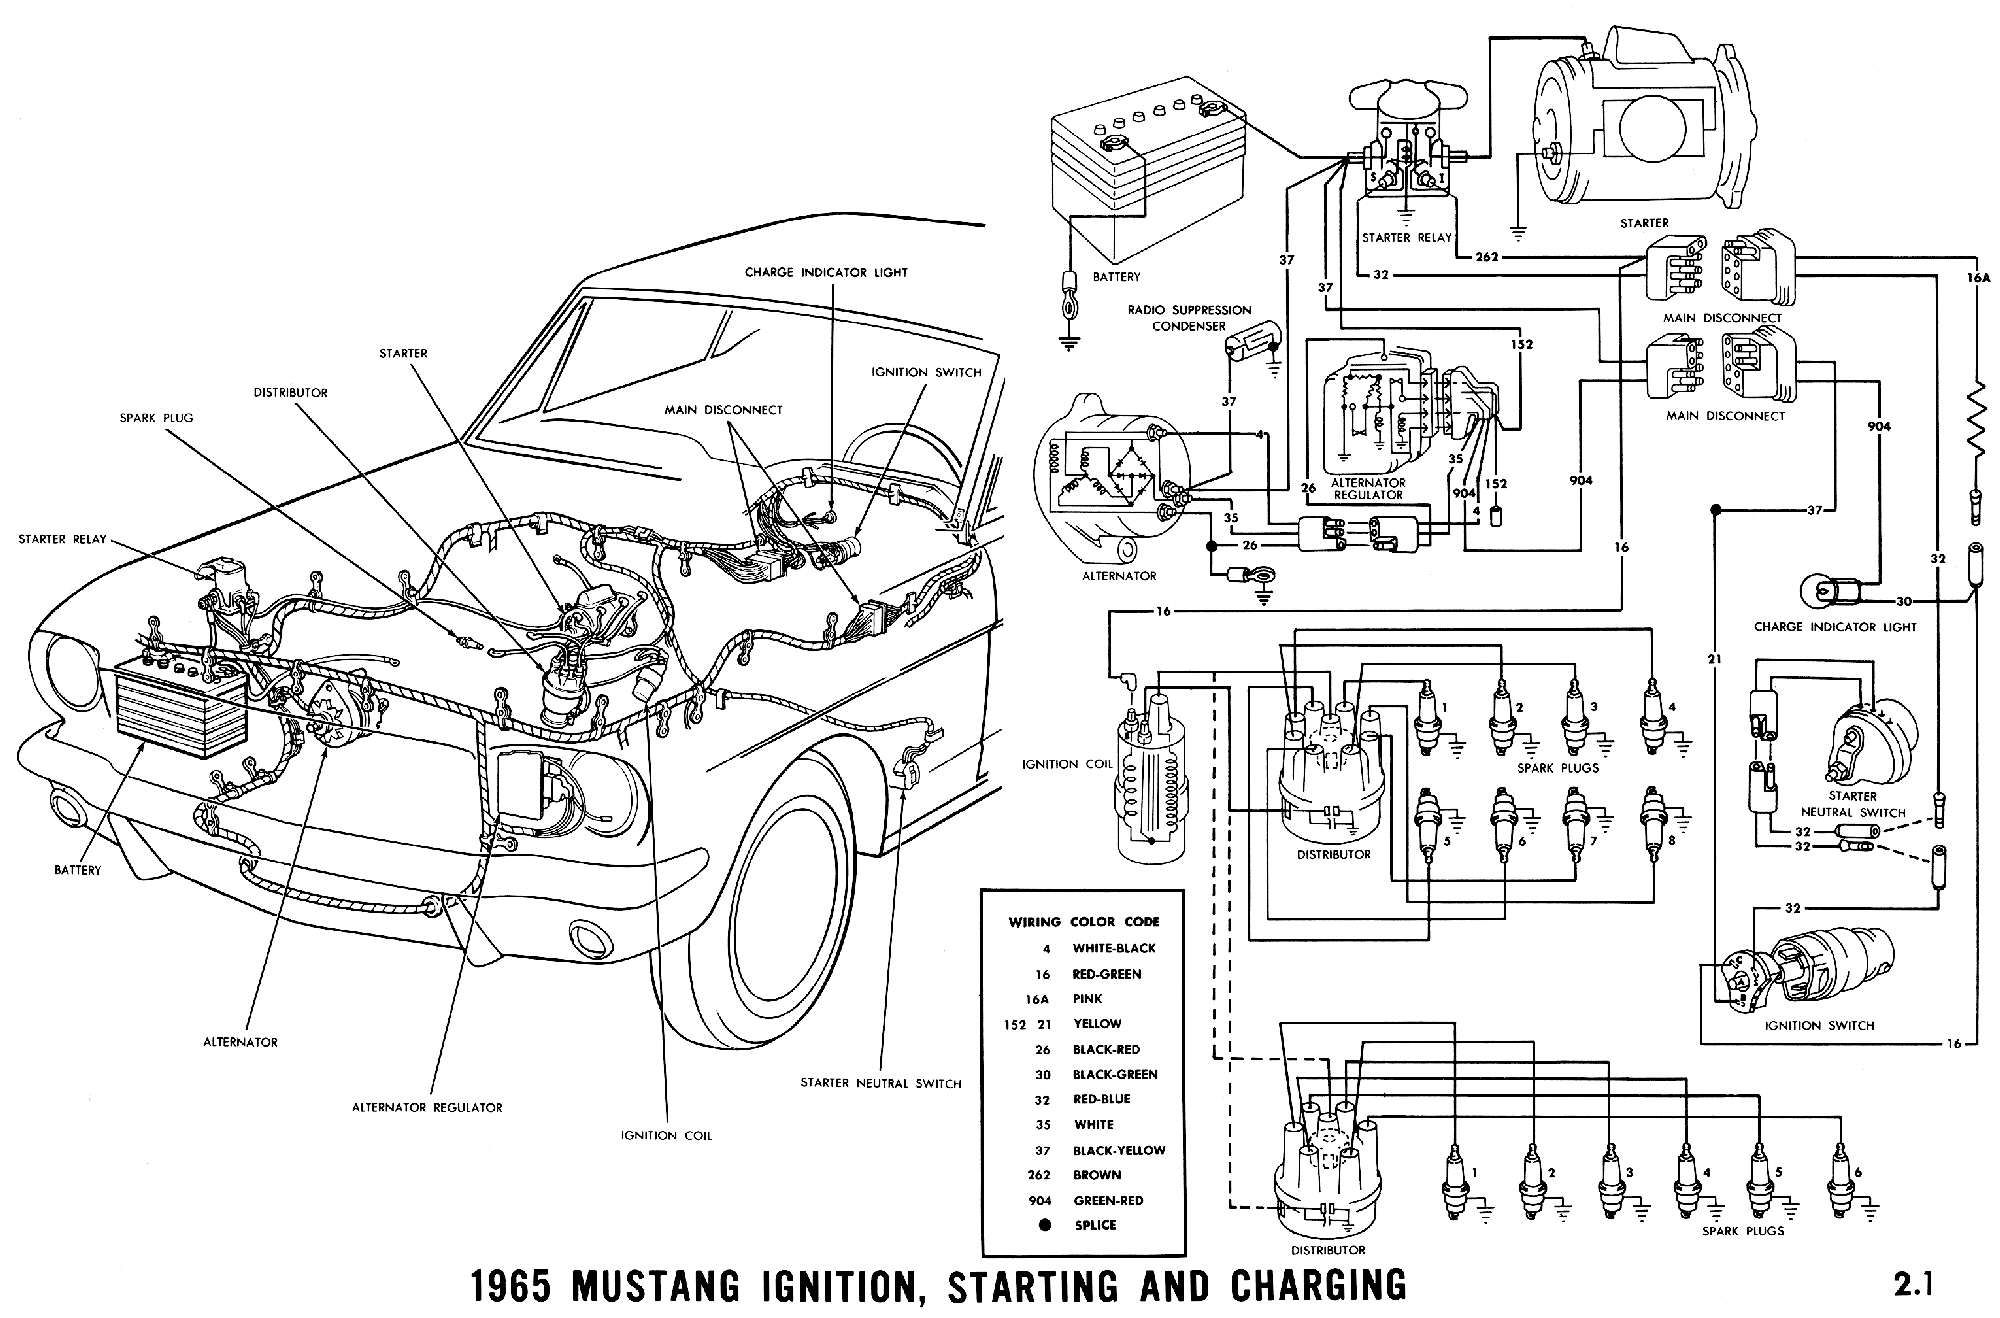 small resolution of 1965 mustang wiring diagrams mustang 1965 mustang mustang basic ignition wiring diagram 1965 mustang